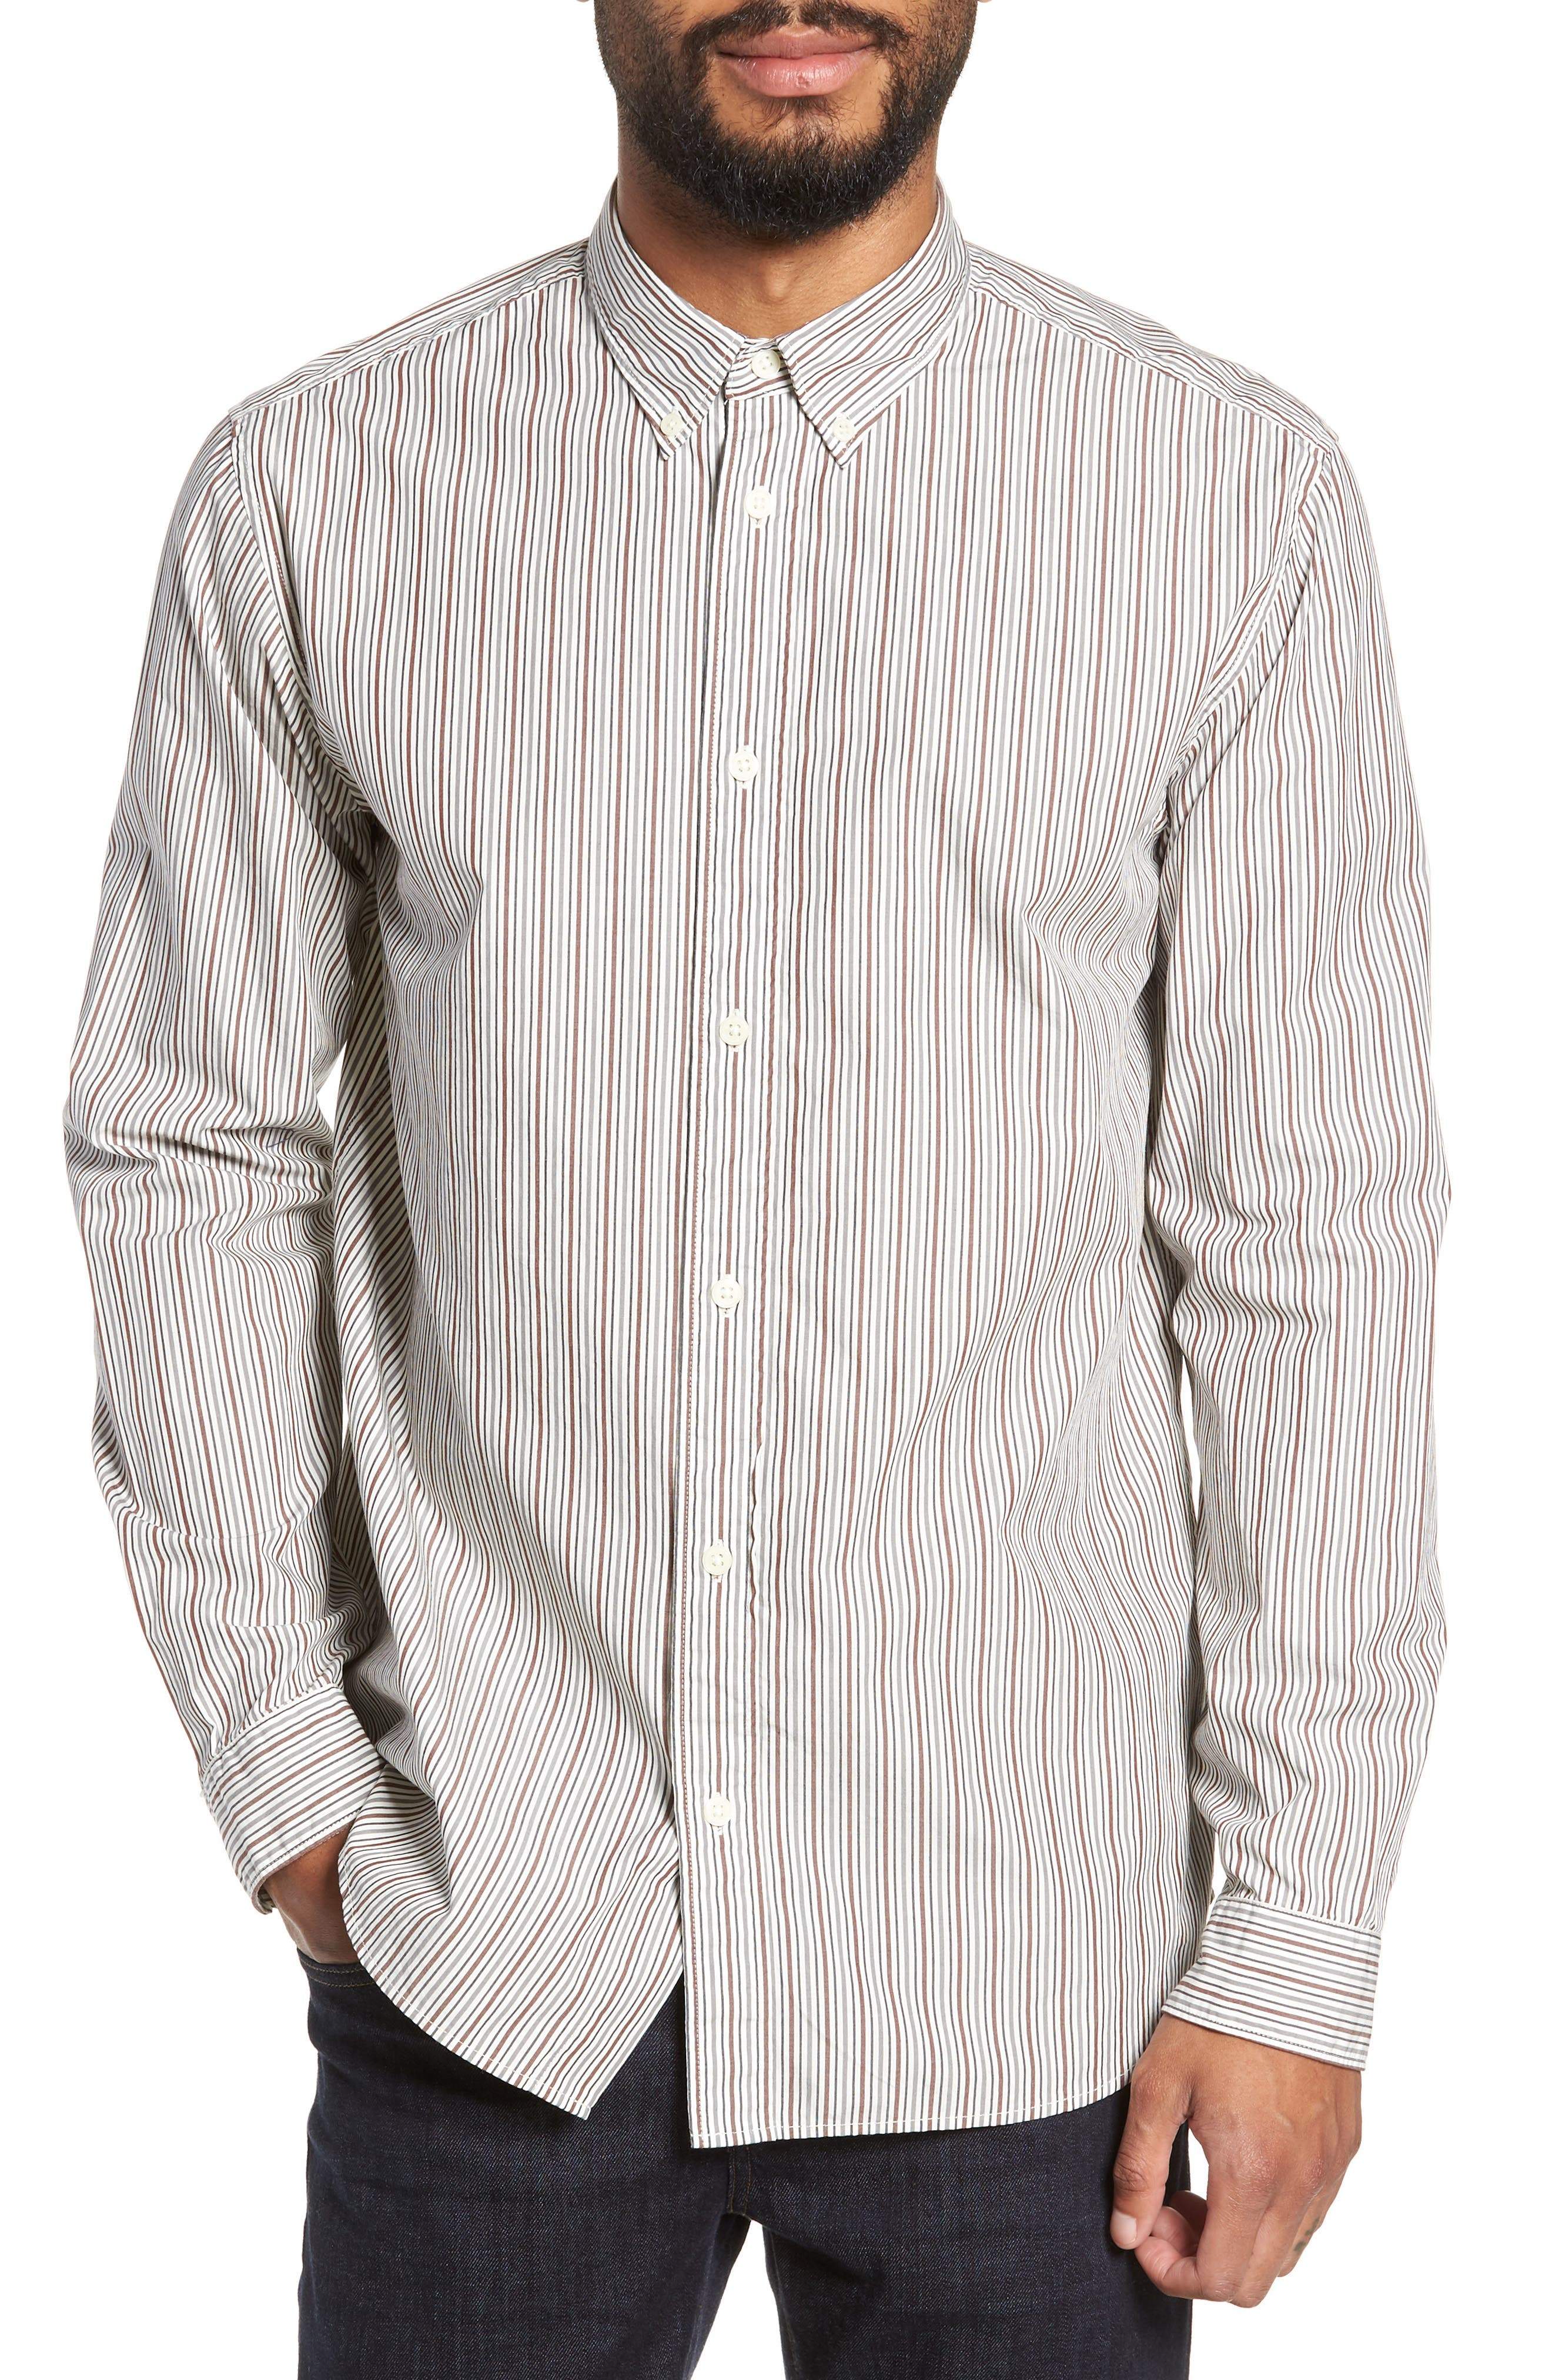 Carlo Regular Fit Stripe Sport Shirt,                             Main thumbnail 1, color,                             QUIET SHADE STRIPES